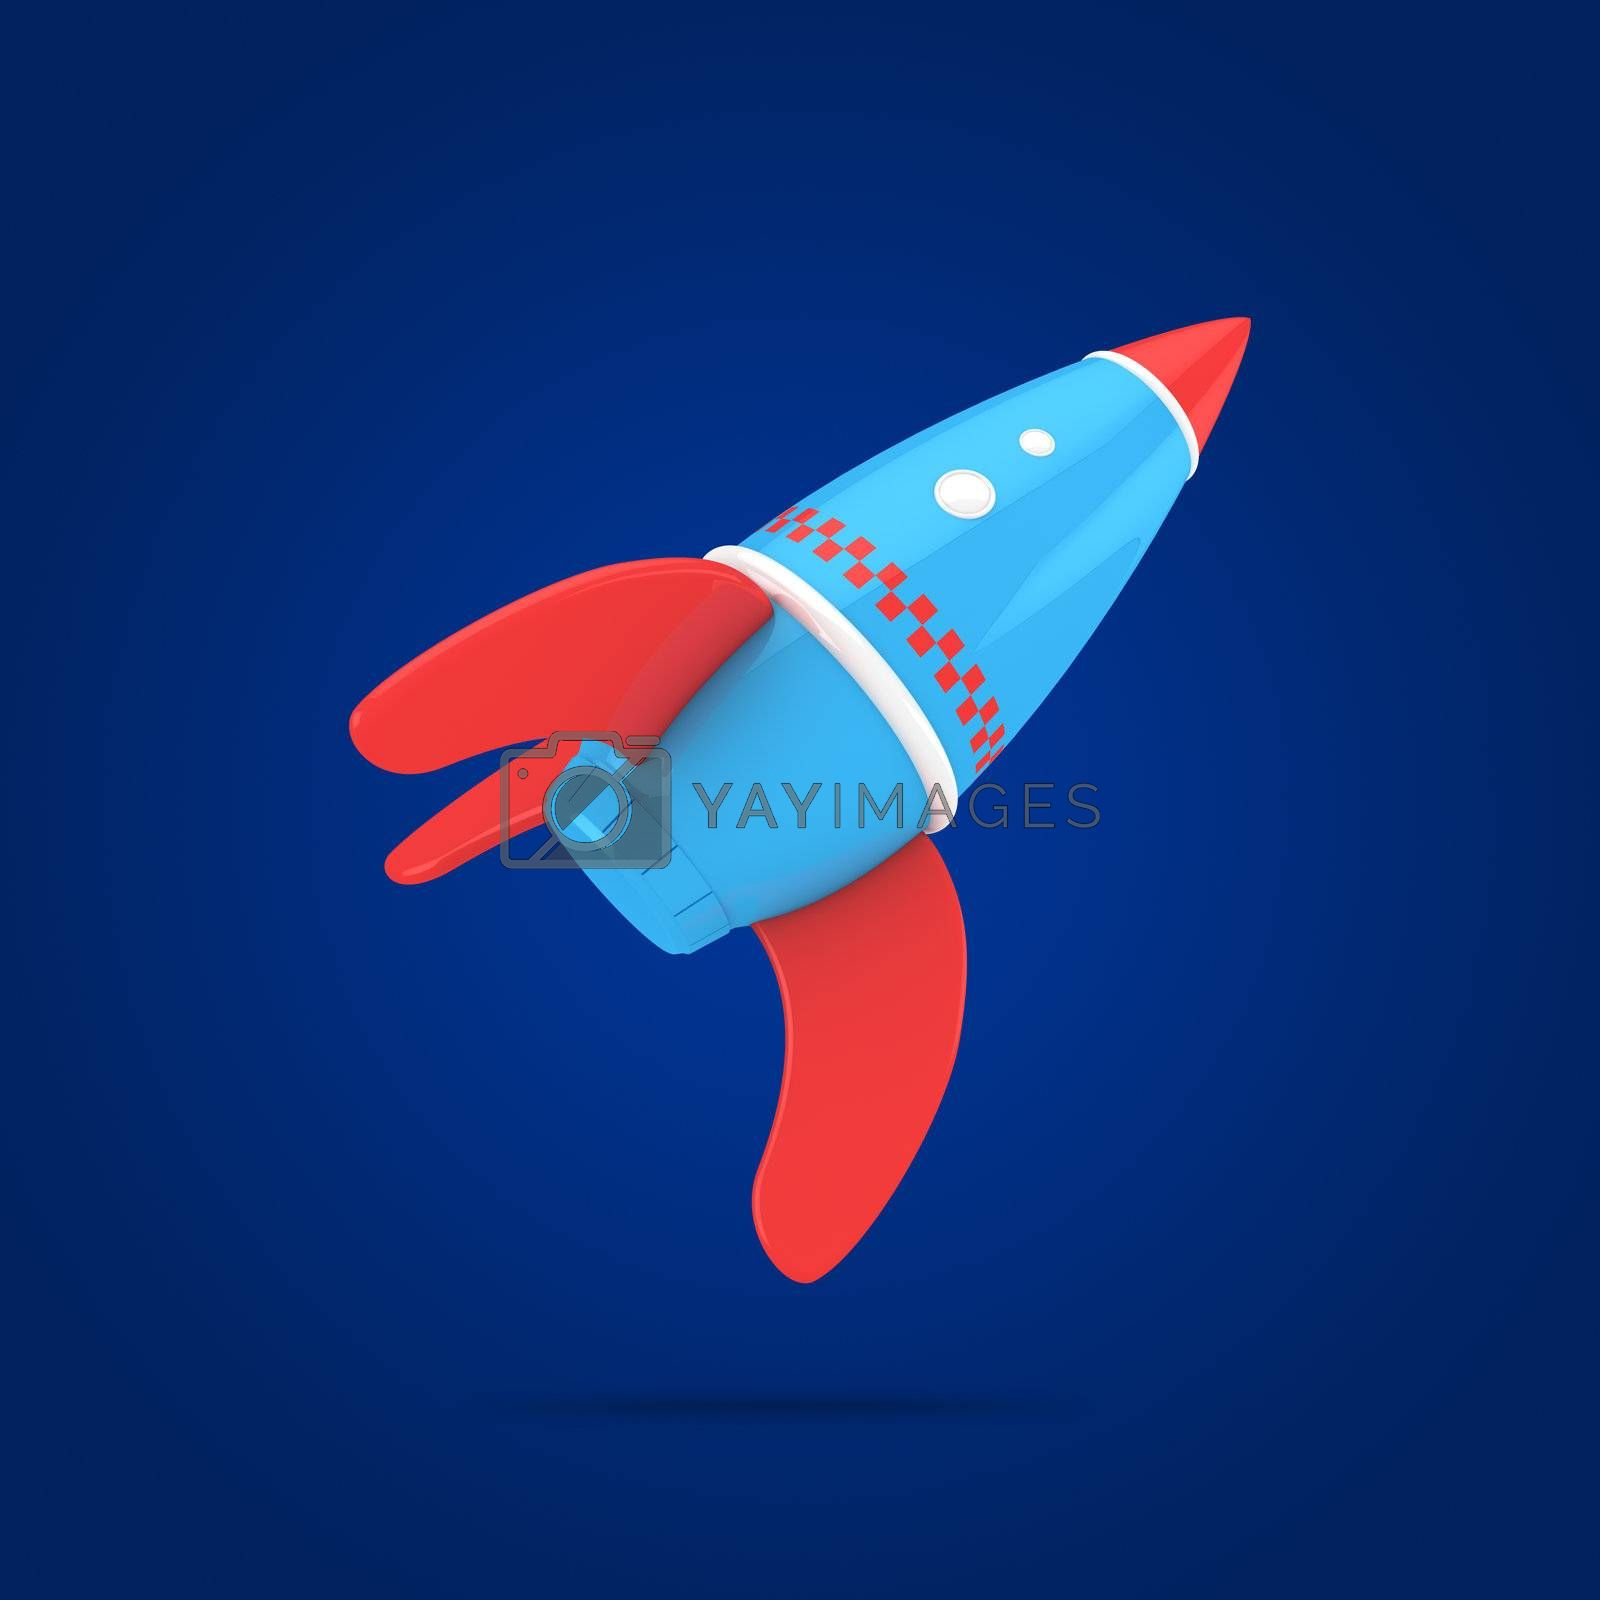 Flying rocket on the blue background, 3d computer graphic